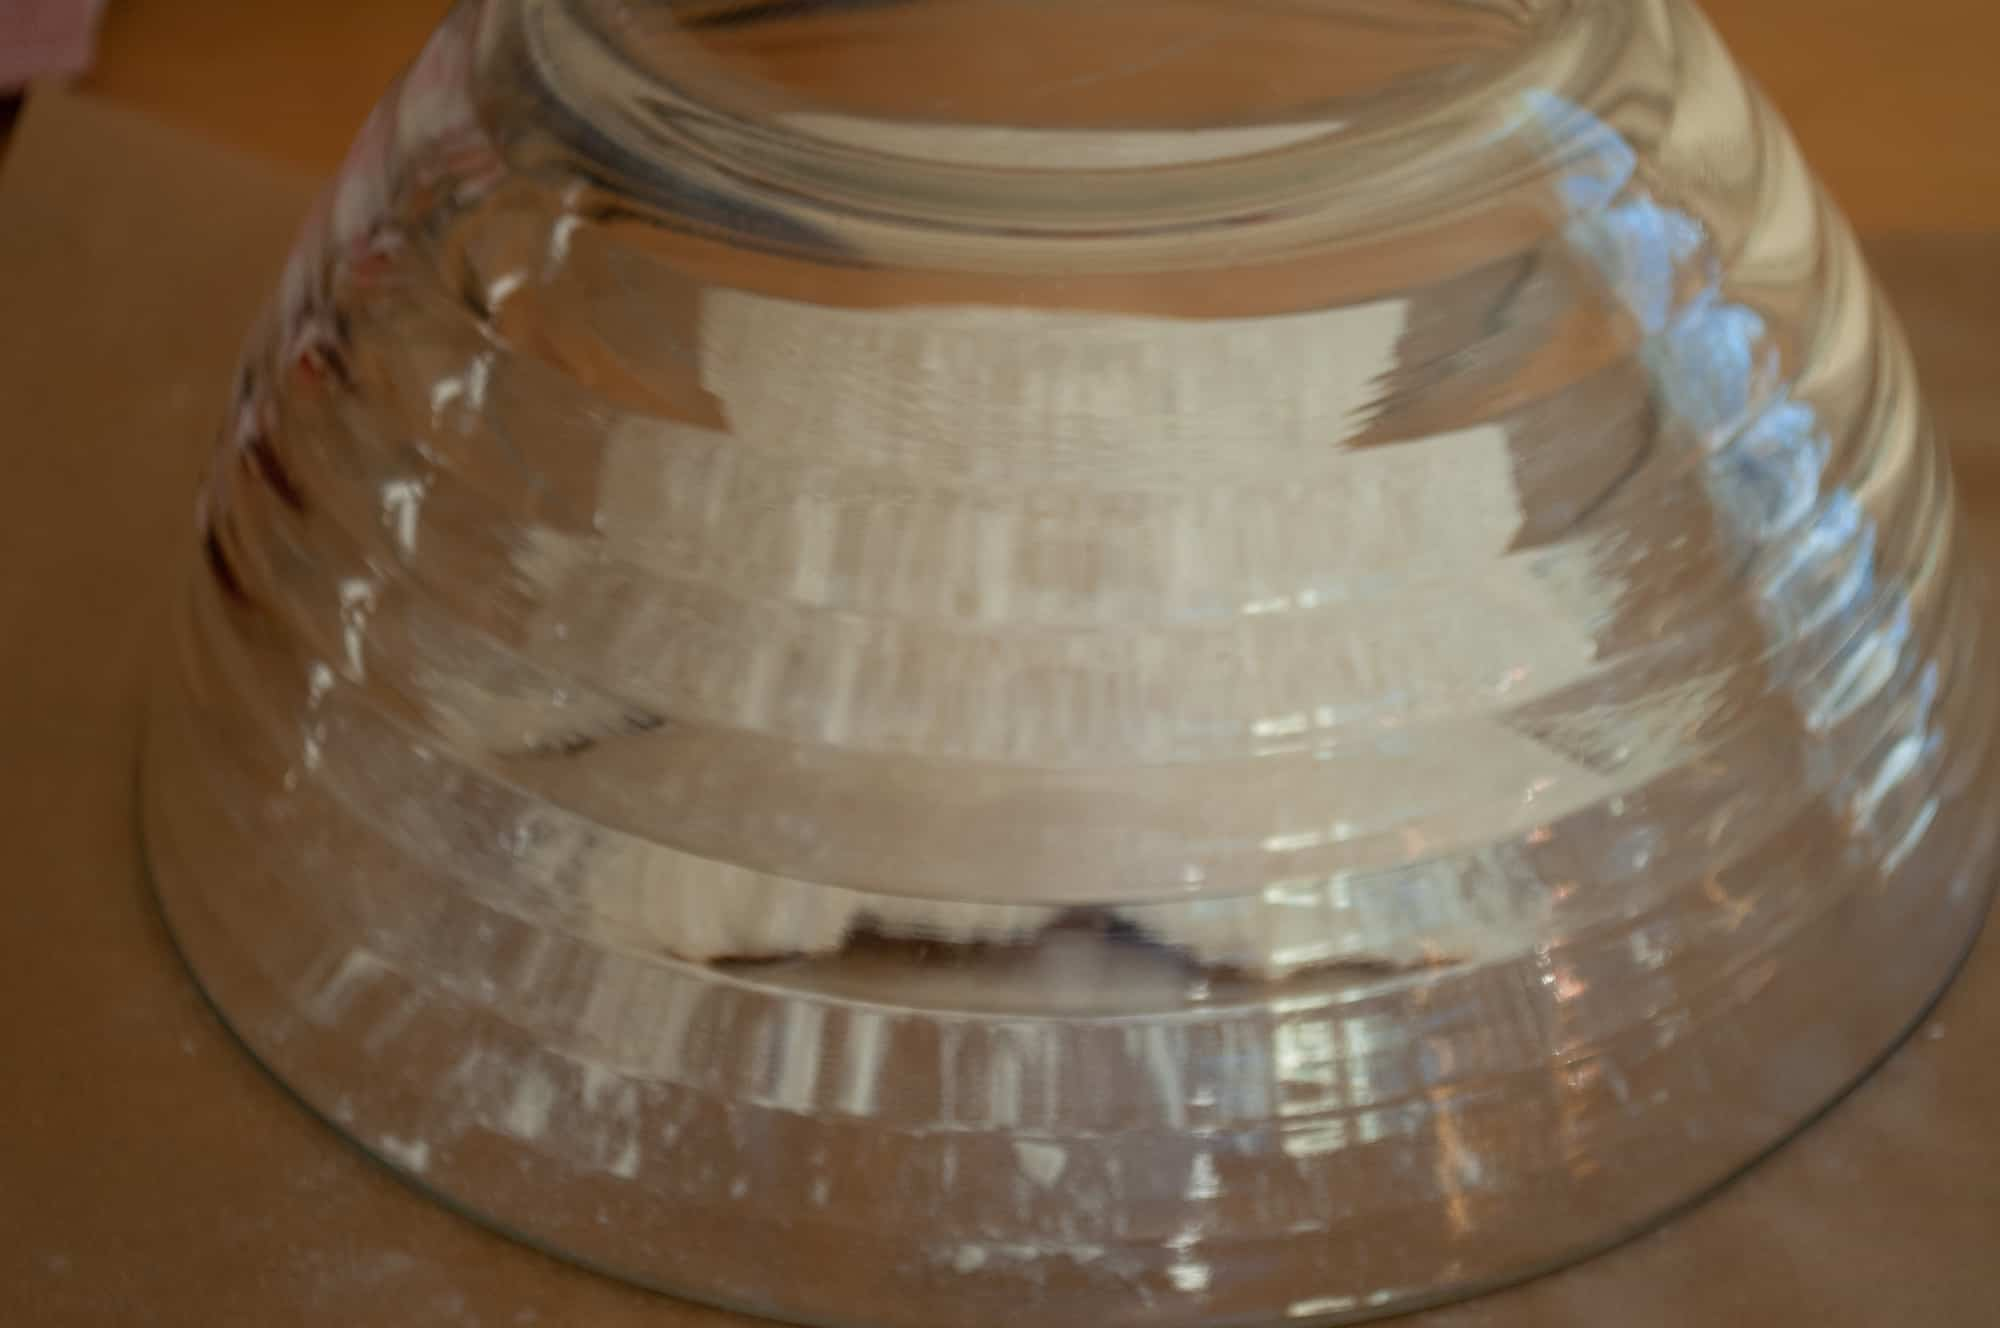 Letting bread rise under a bowl reduces the need for plastic wrap.